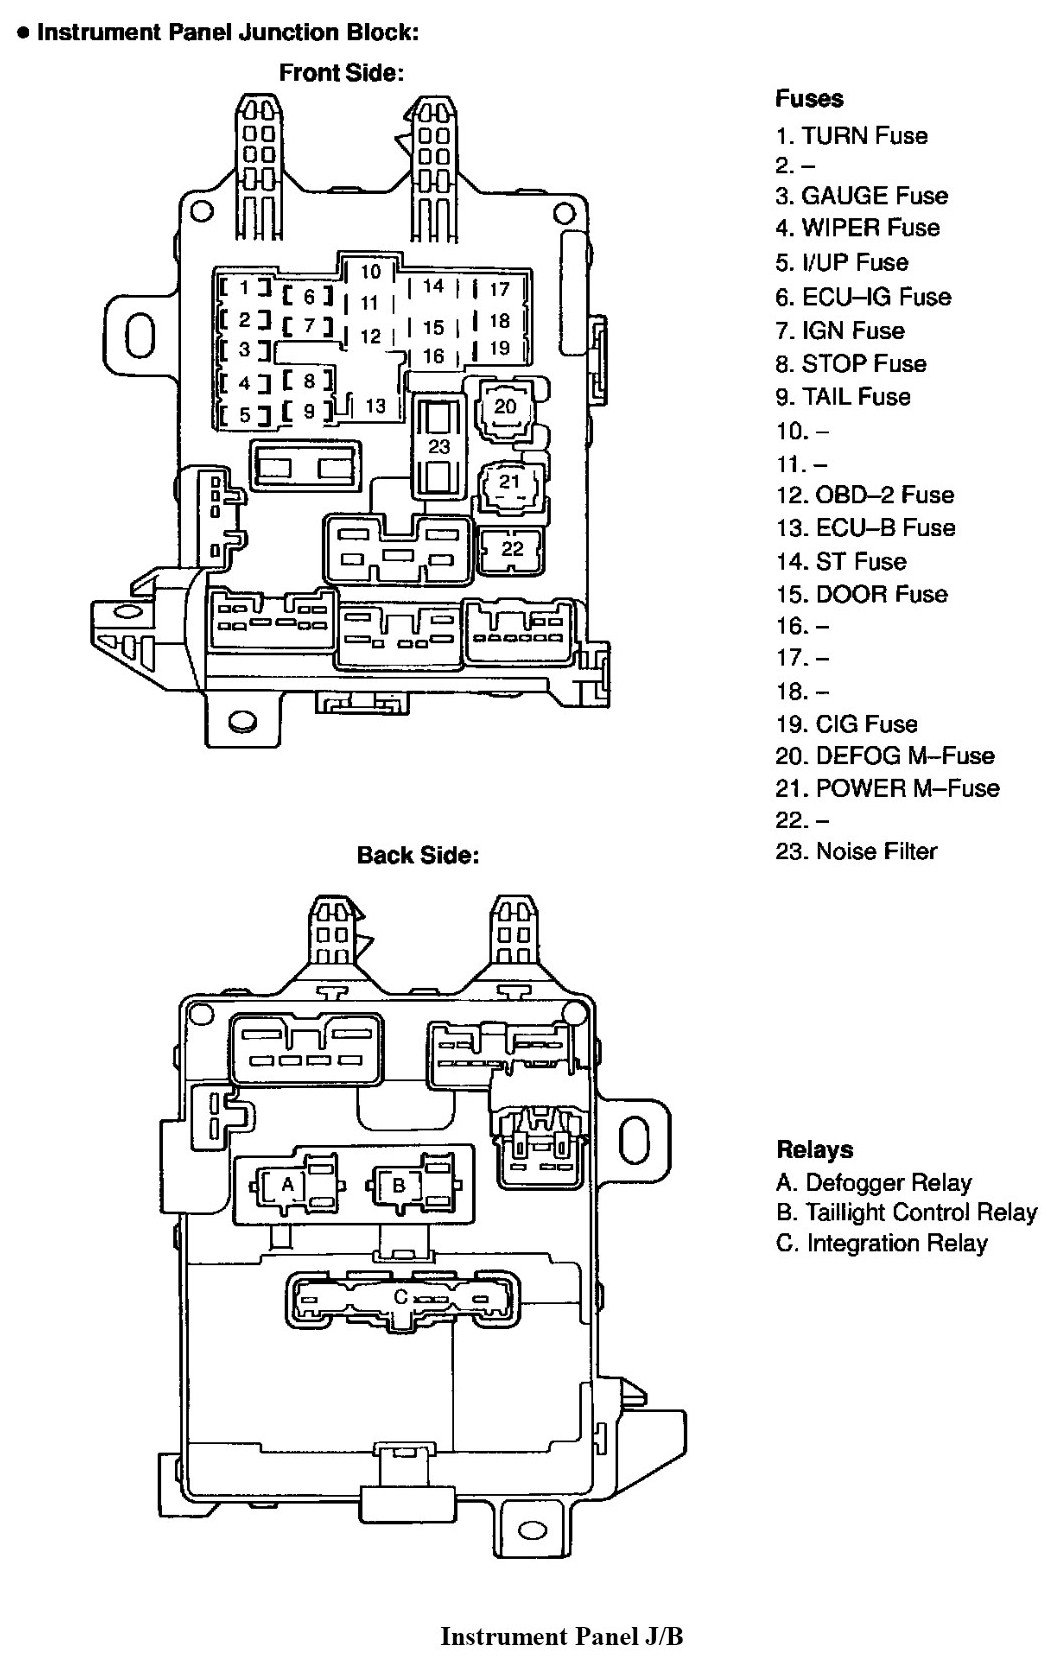 2006 Toyota Corolla Fuse Diagram Archive Of Automotive Wiring 2013 Camaro Box 2007 Schematics Rh Thyl Co Uk Electrical